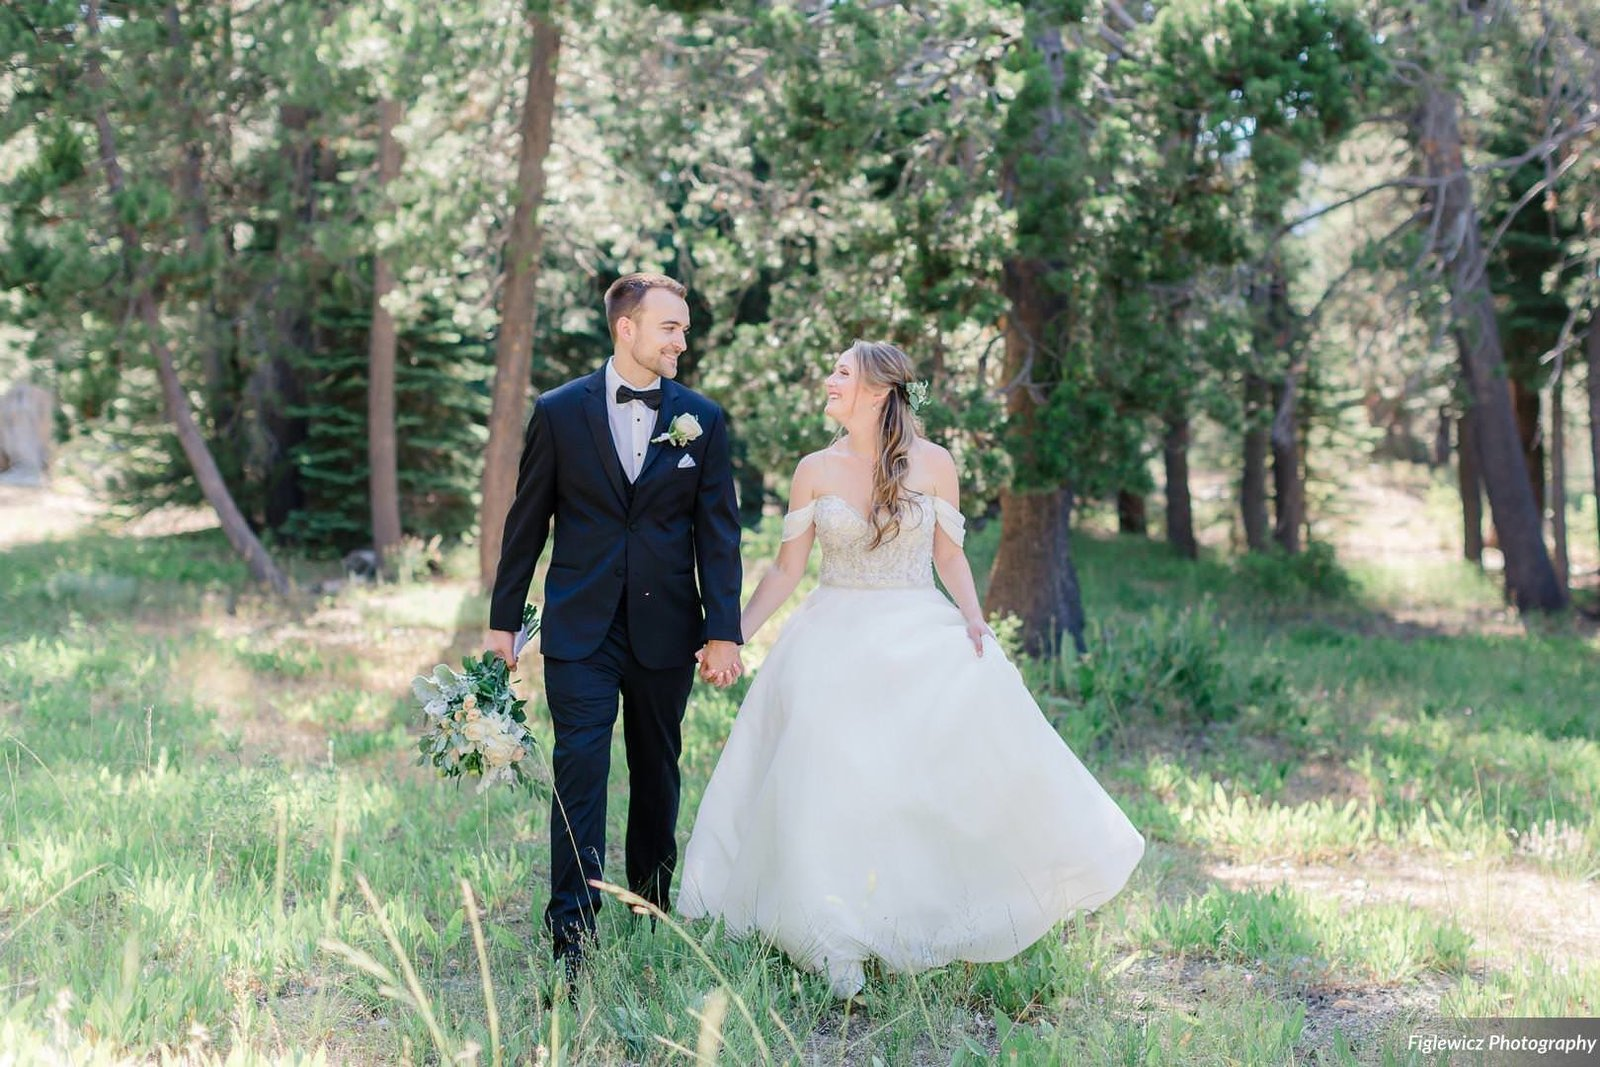 Garden_Tinsley_FiglewiczPhotography_LakeTahoeWeddingSquawValleyCreekTaylorBrendan00074_big